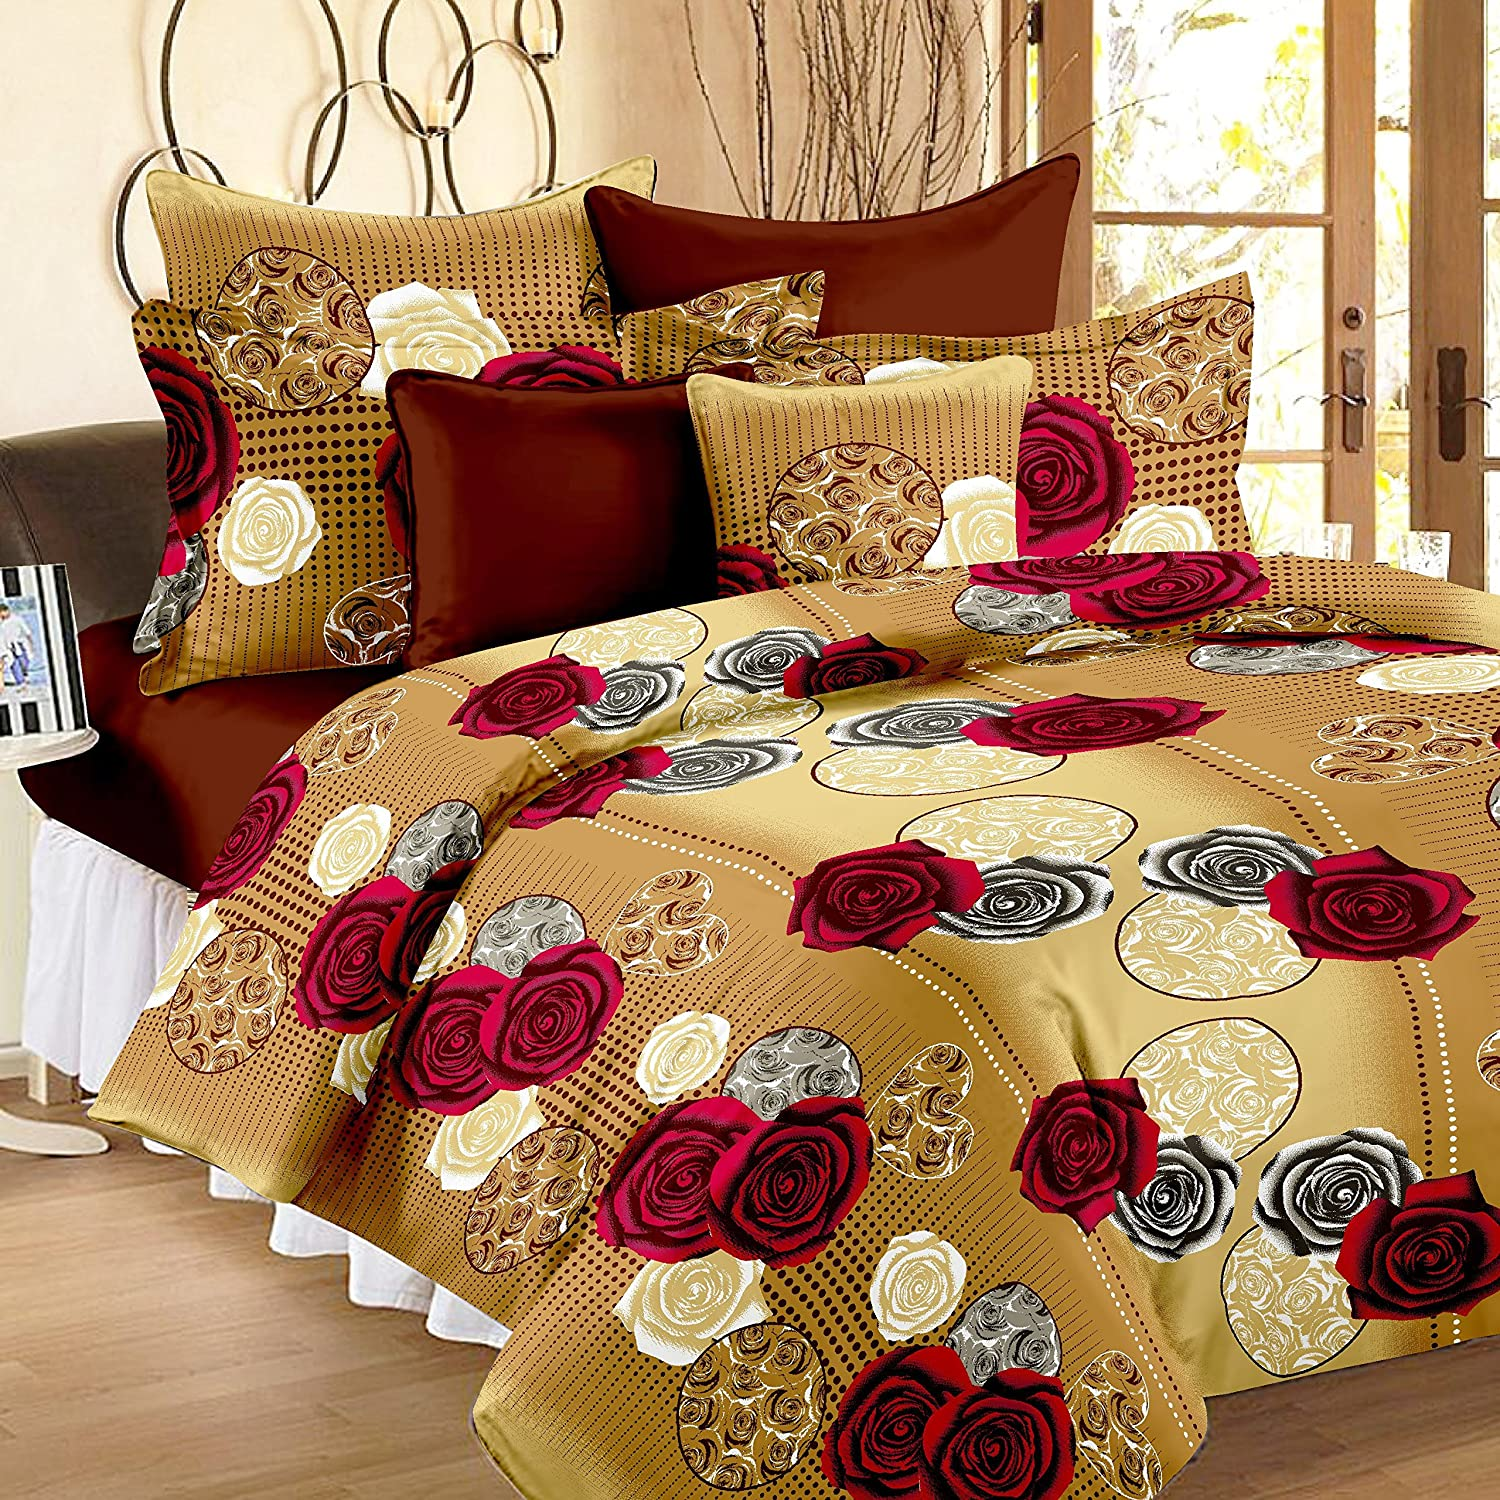 Floral cotton bed sheets - Story Home 120 Tc Vivid Roses Cotton Double Bedsheet With 2 Pillow Covers Cream Amazon In Home Kitchen